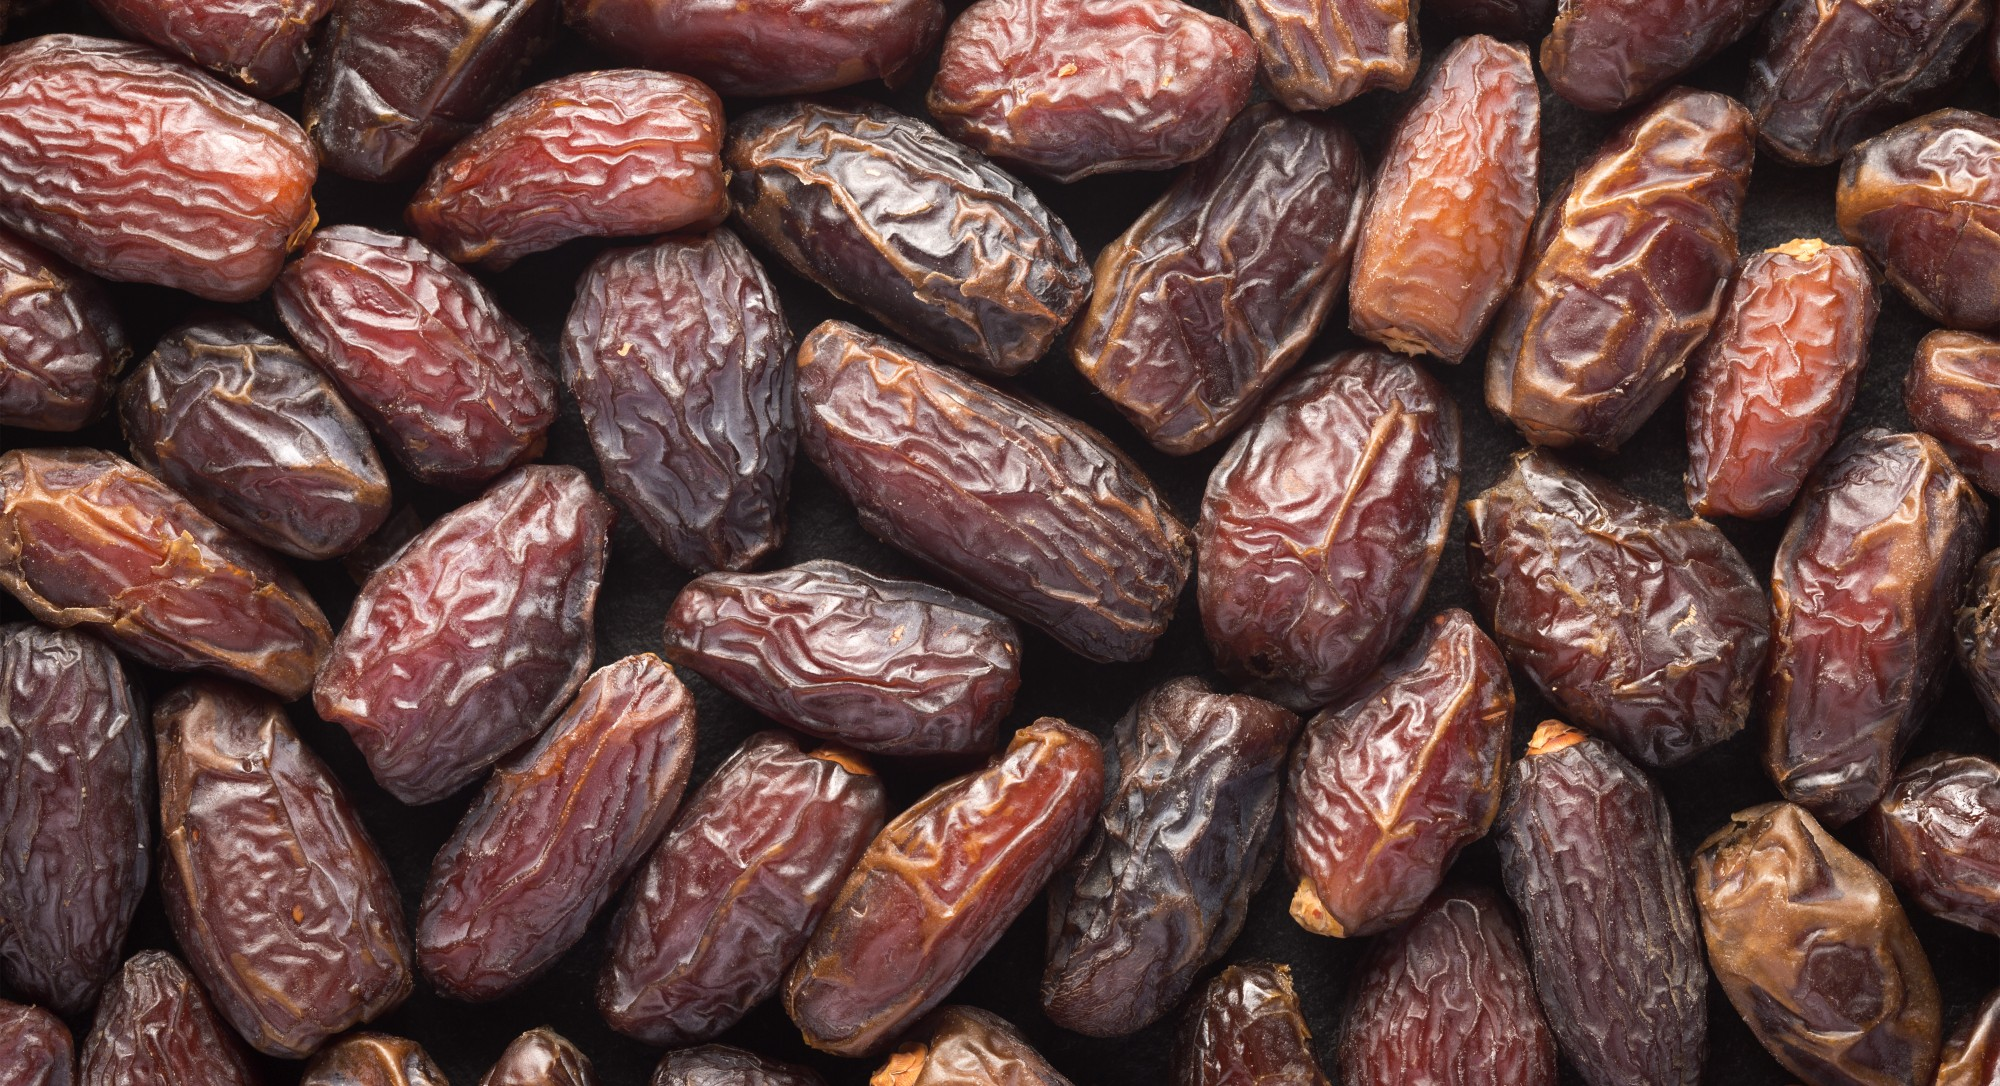 Ingredient of the Week: Why You'll Fall In Love With Dates